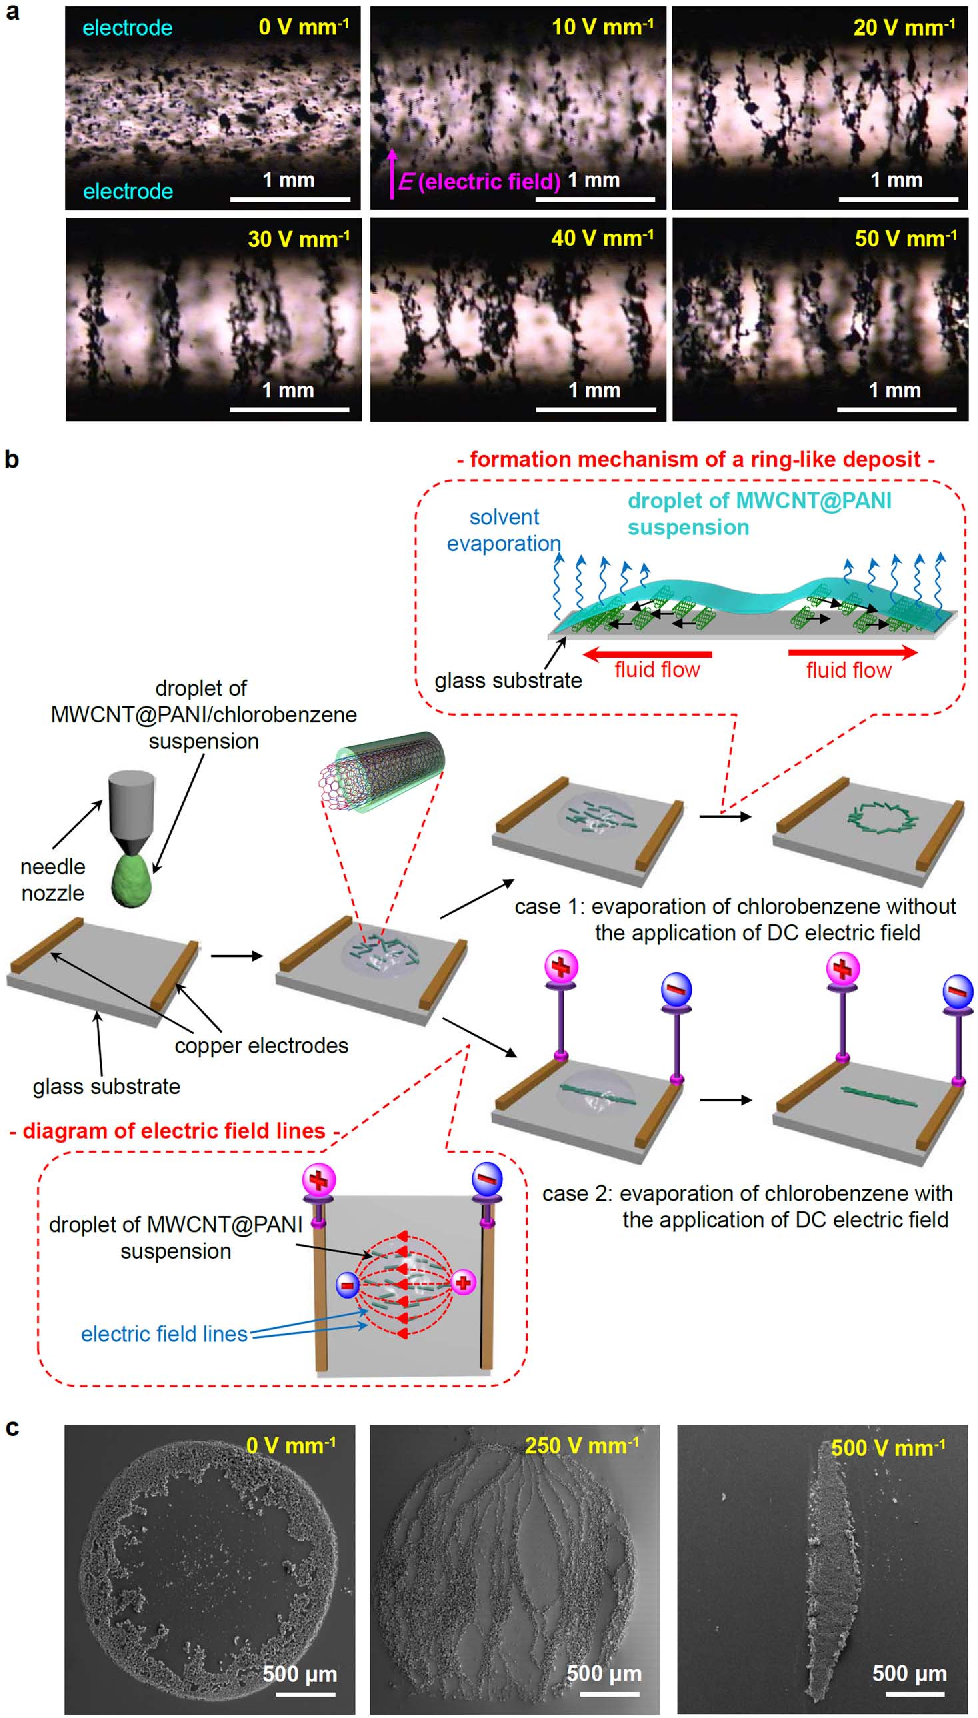 Figure 1 | Fabrication of MWCNT@PANI pattern under DC electric field. (a) Optical microscope images of aligned polyaniline-coated multi-walled carbon nanotube (MWCNT@PANI) between two electrodes after application of DC electric fields (gap between electrodes: 1.5 mm, concentration